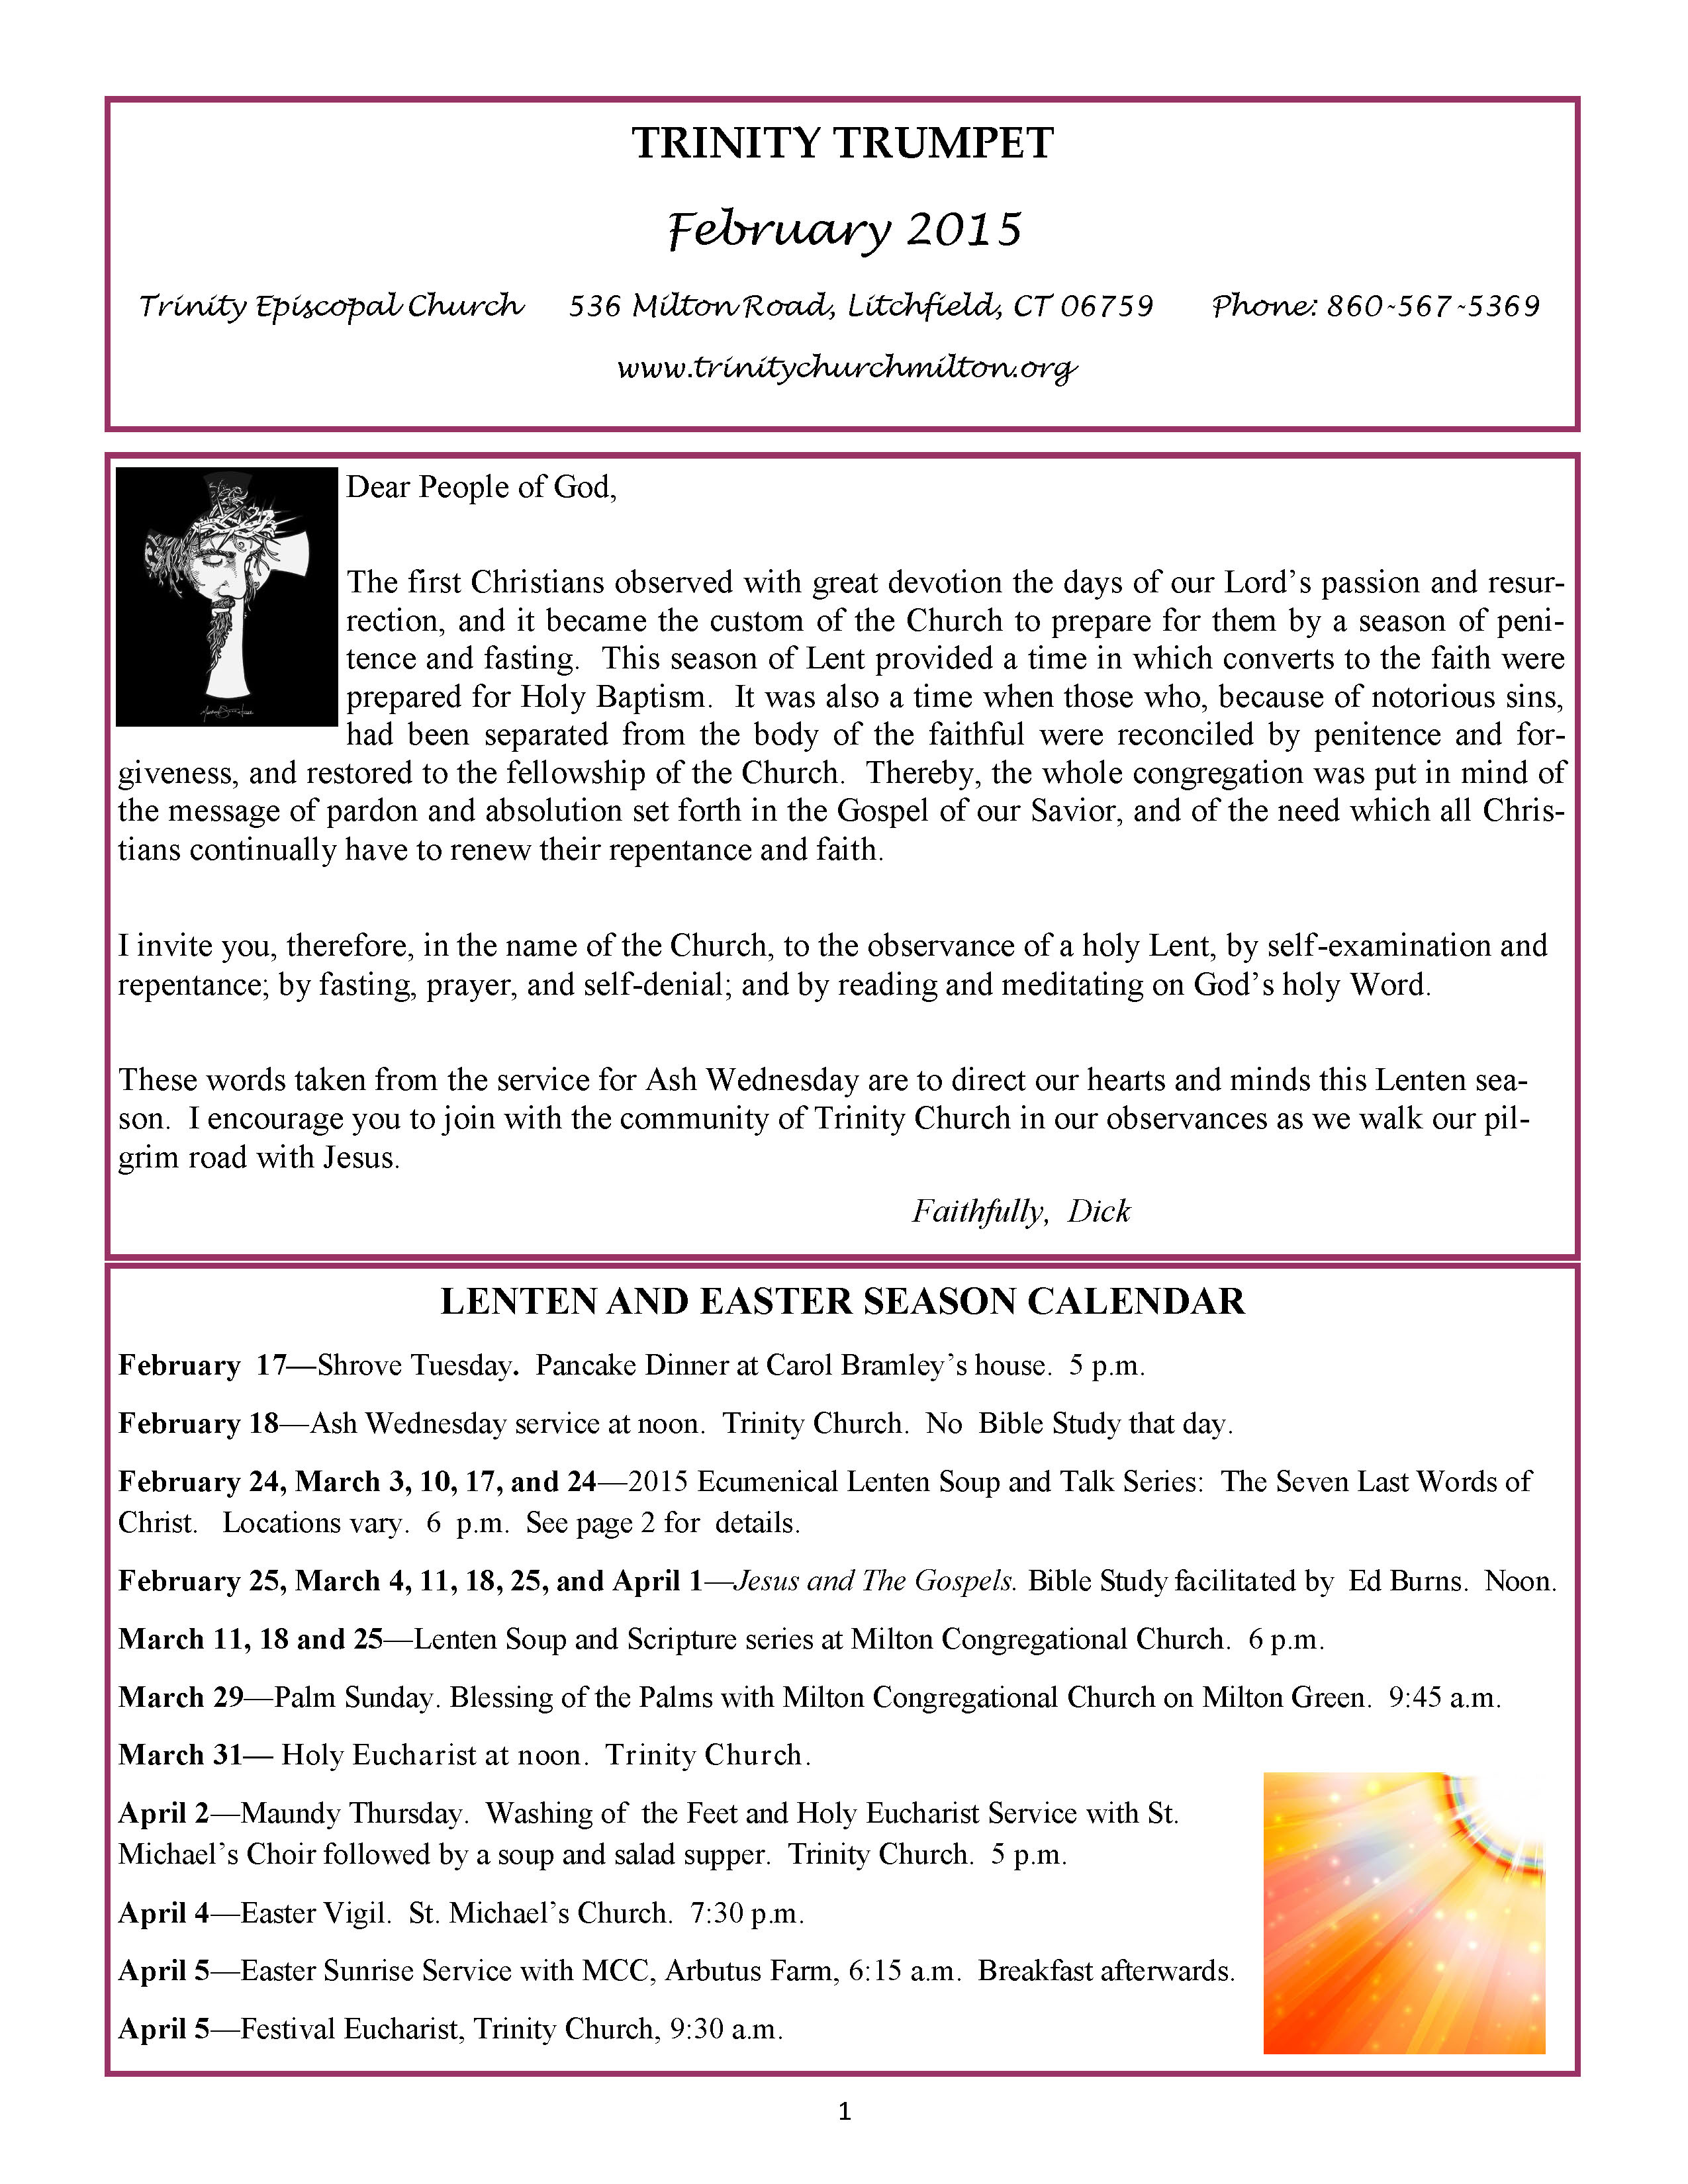 Trinity Trumpet February 2015_Page_1